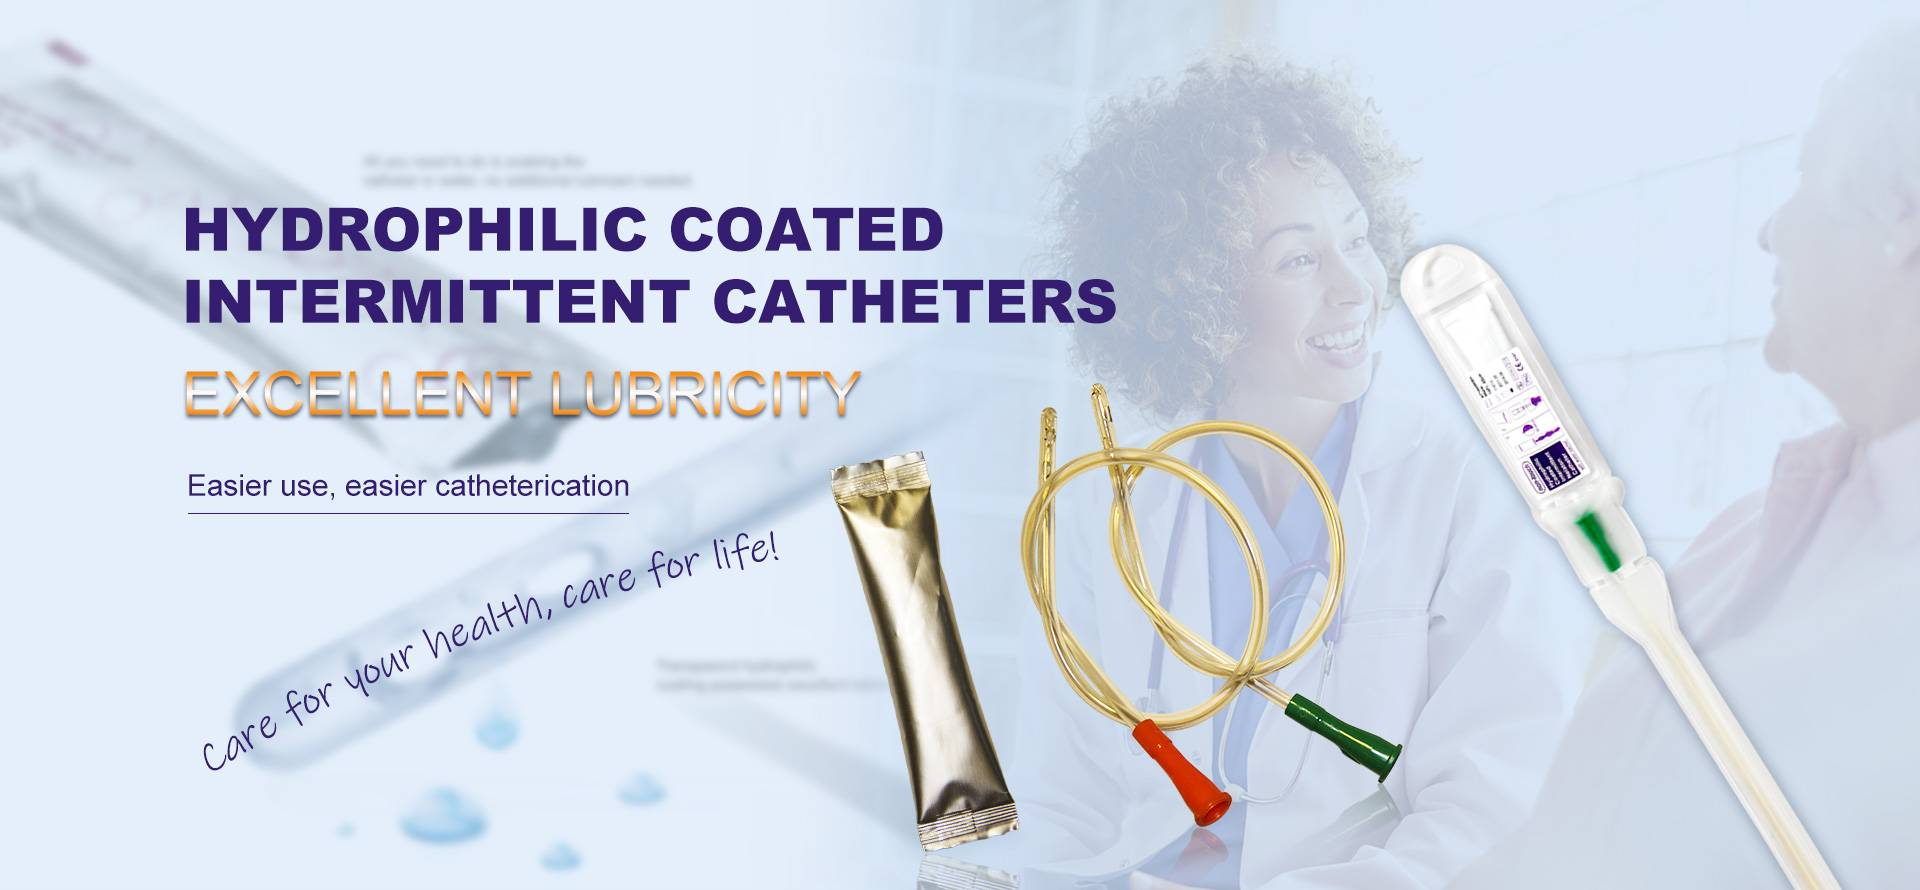 Hyétophilic Coated Intermittent Catheters